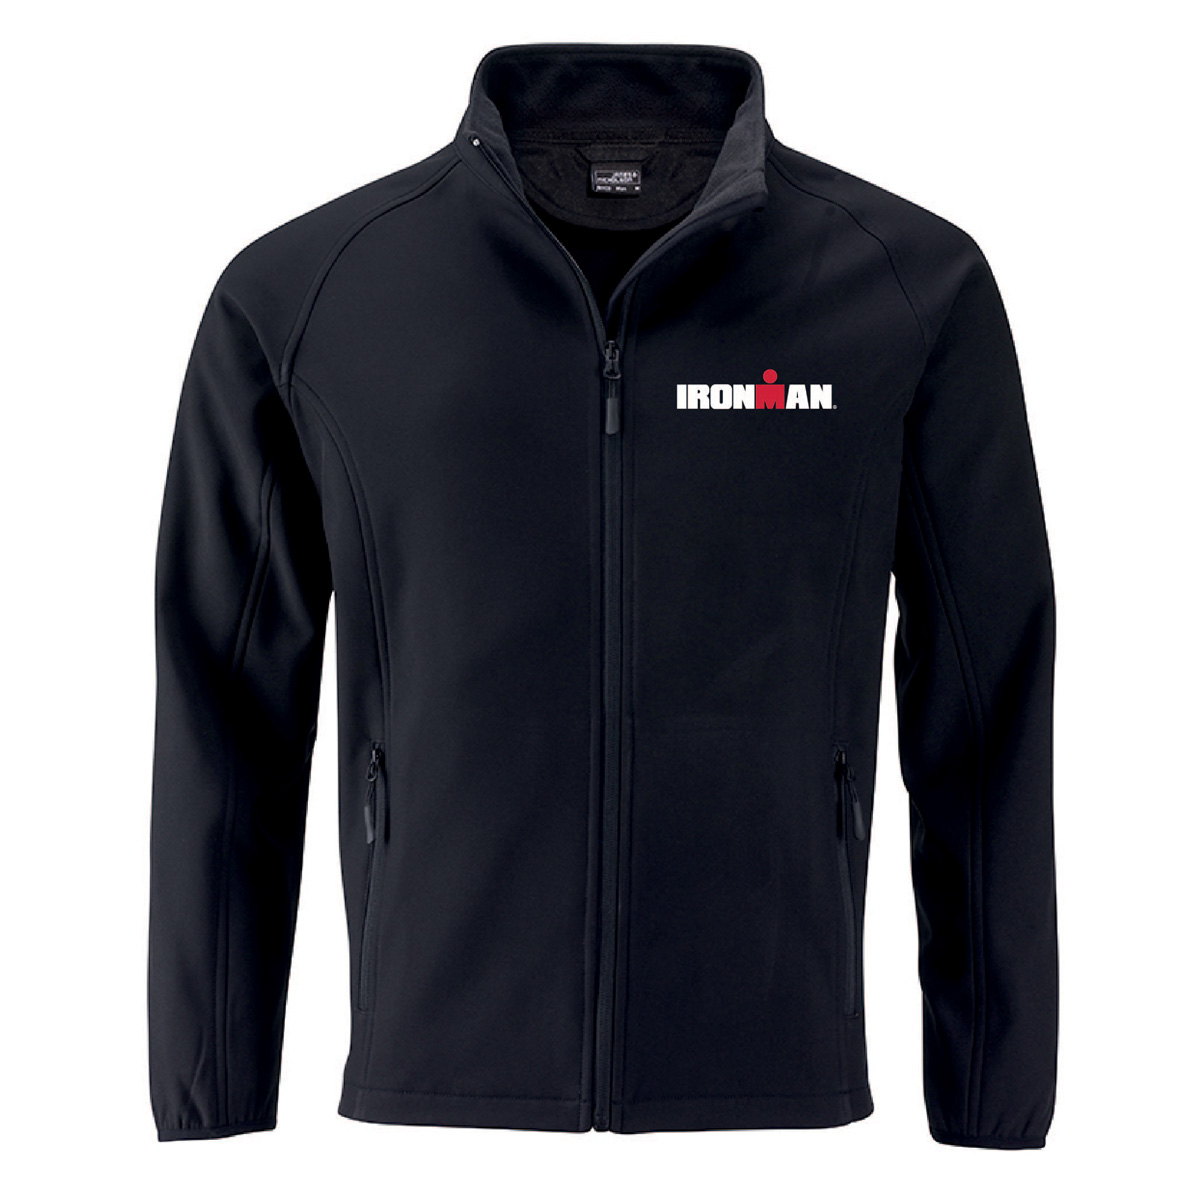 IRONMAN SANTINI MEN'S SOFTSHELL JACKET